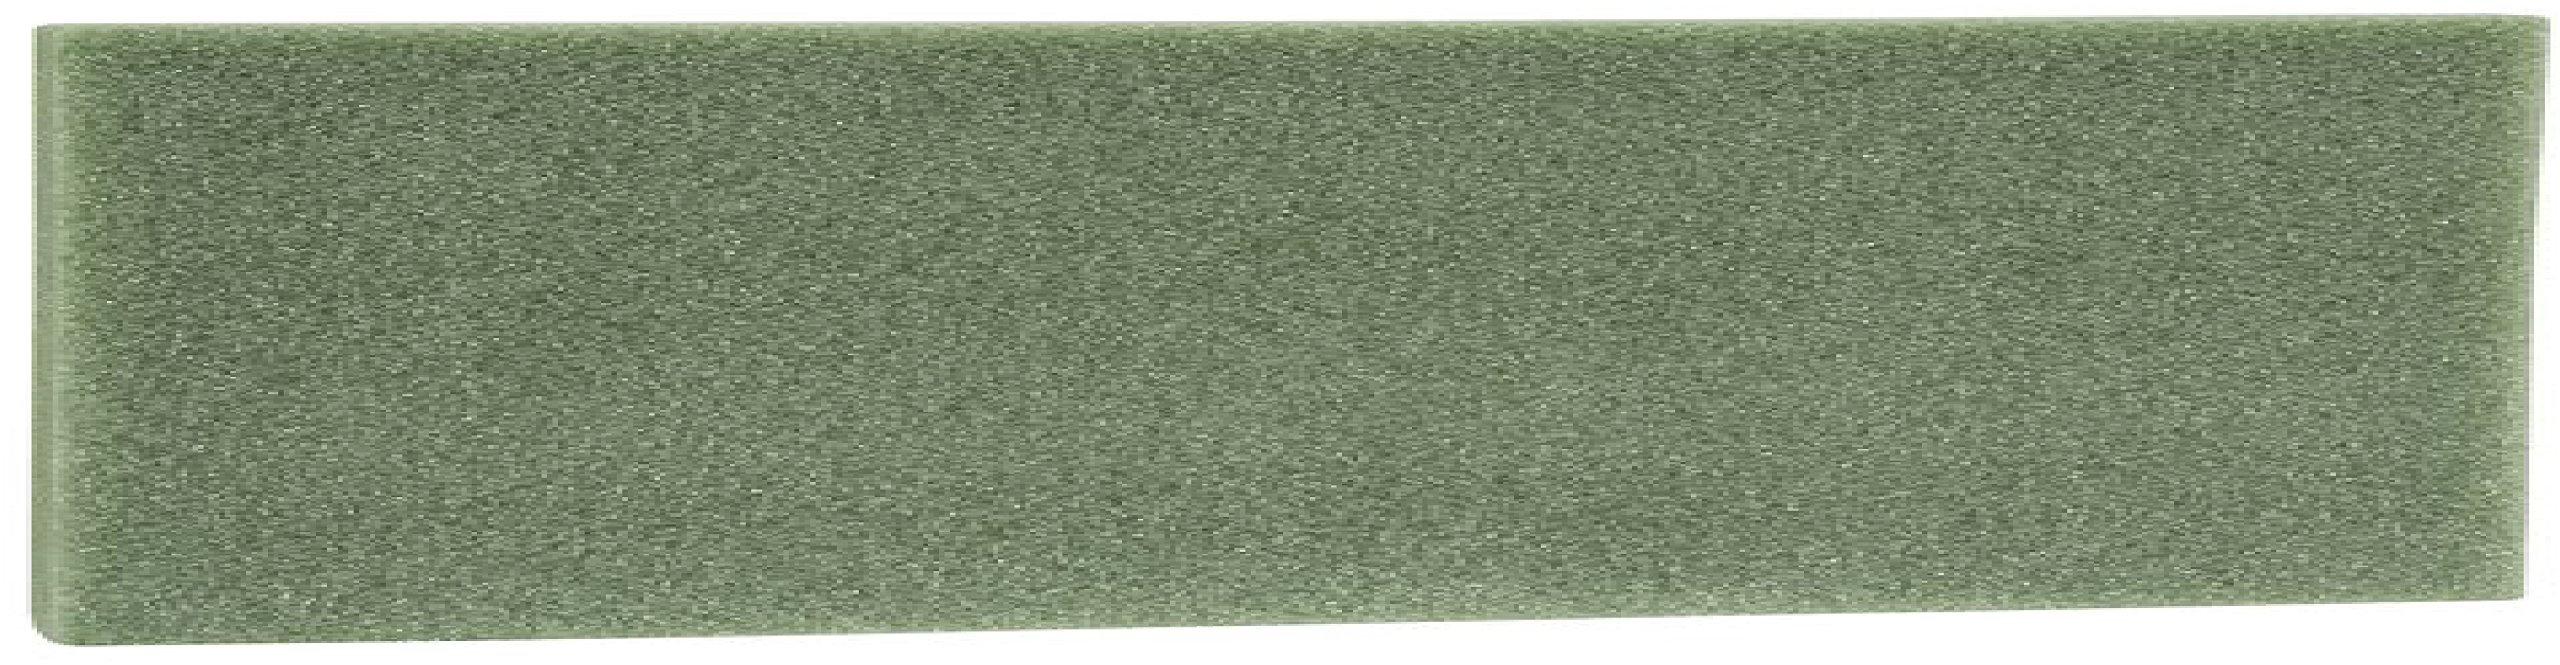 Styrofoam Sheet 36''X12''X2'' Bulk-Green Choose either 5 sheets or 20 sheets Craft Foam, Click on ''New (2) from'' to see both offers by Dow (Image #3)